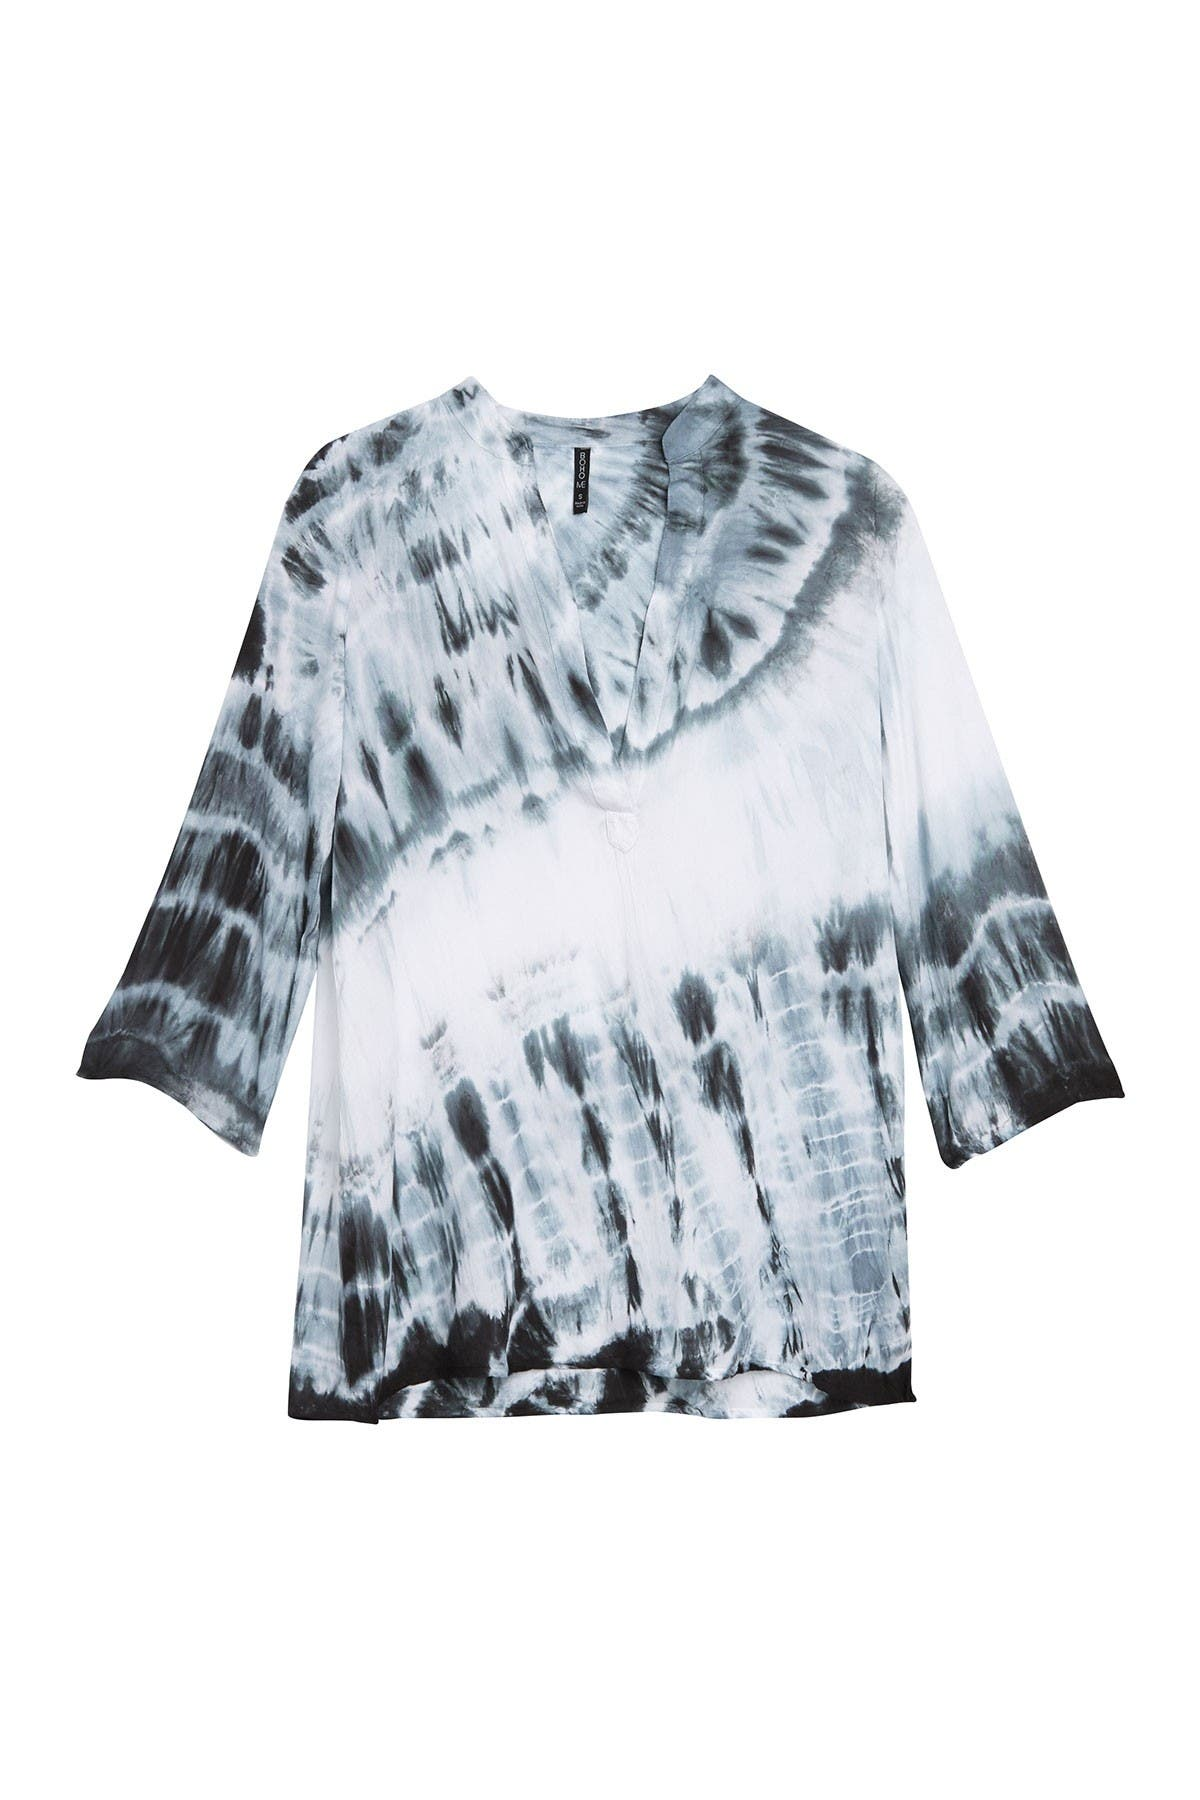 Image of BOHO ME Tie Dye Cover-Up Tunic